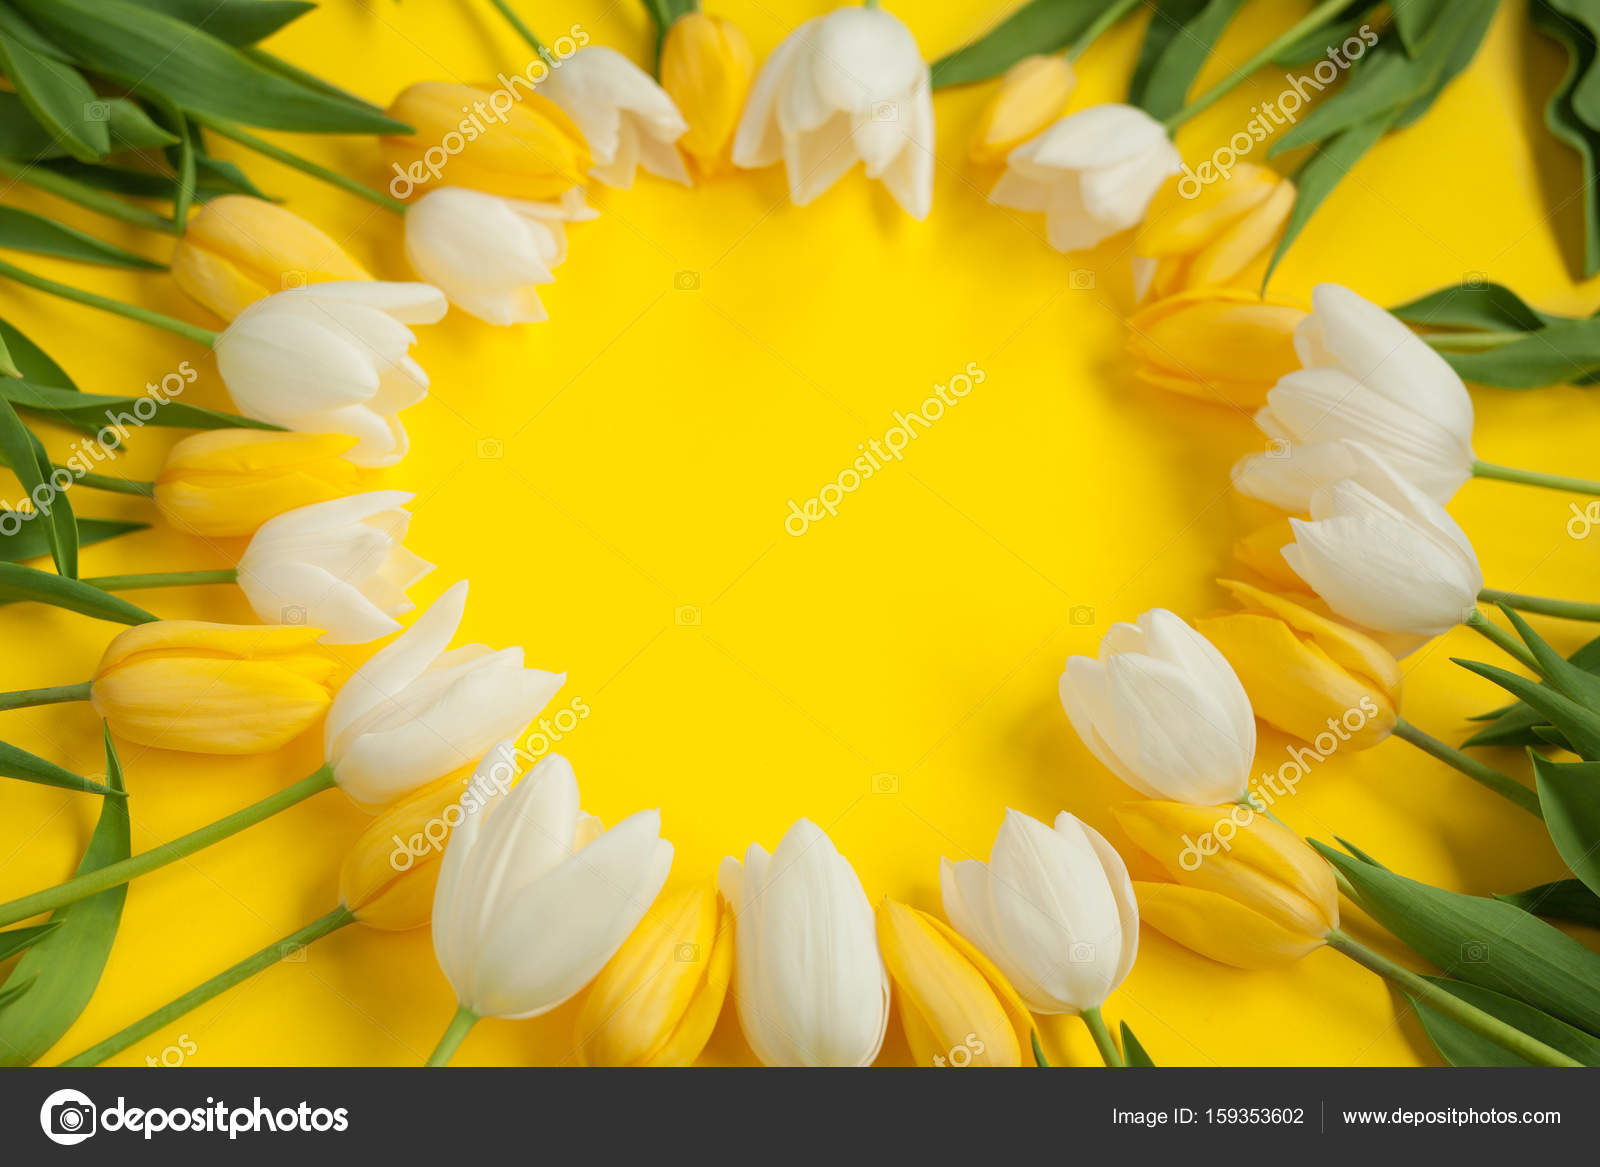 Circle Made With White And Yellow Flowers Stock Photo Kegfire